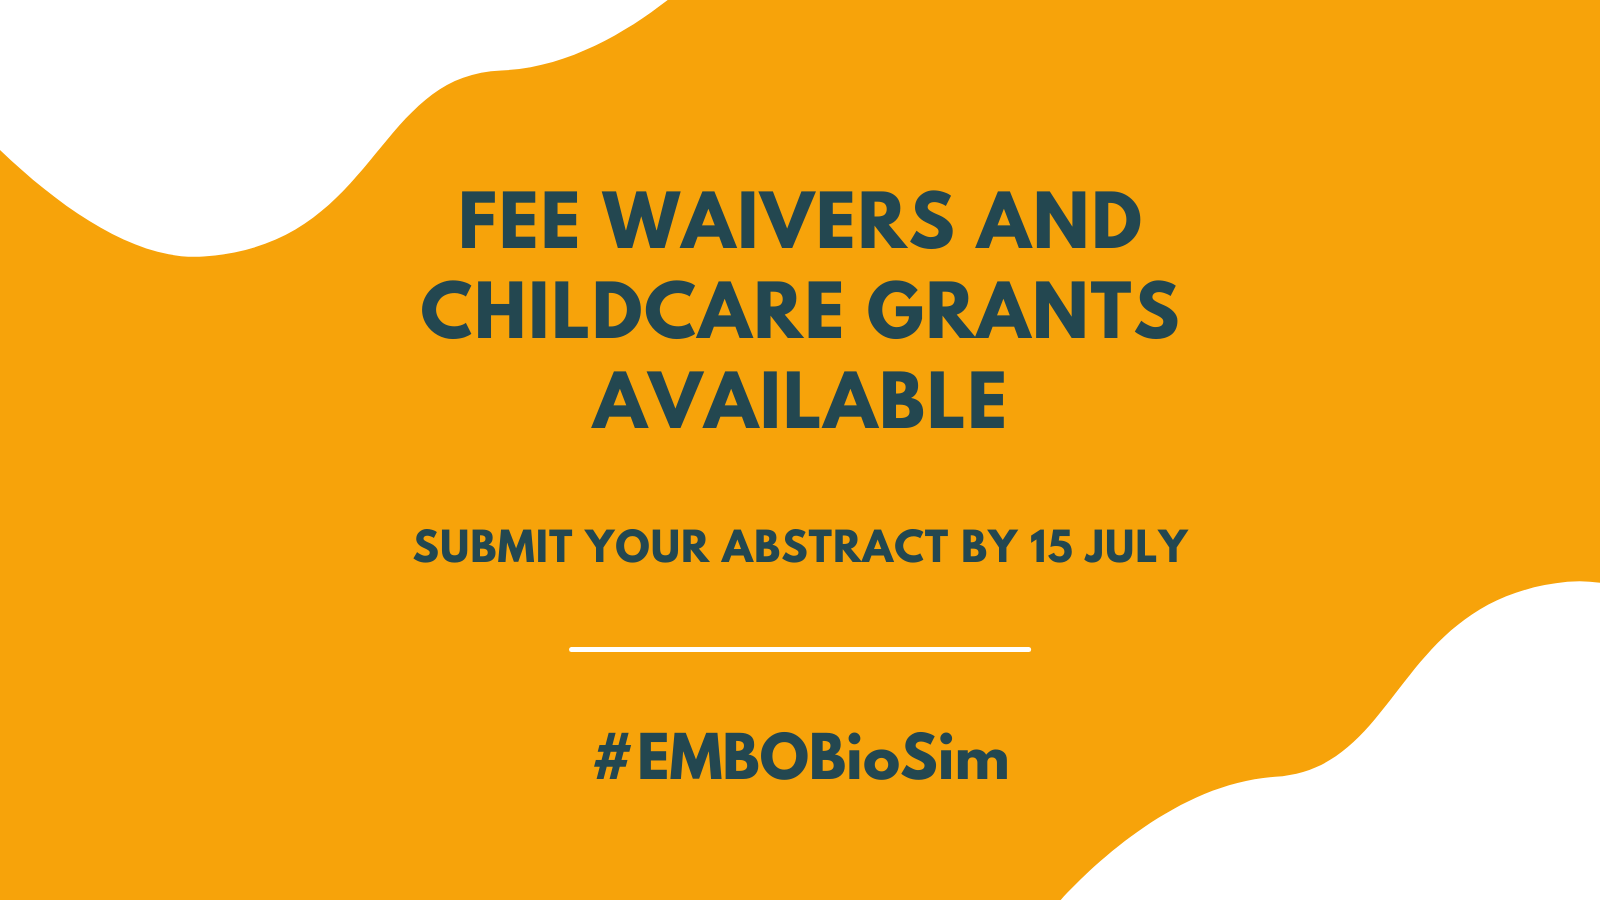 Fee Waivers and childcare grants available. Submit your abstract by 15 July. #EMBOBioSim